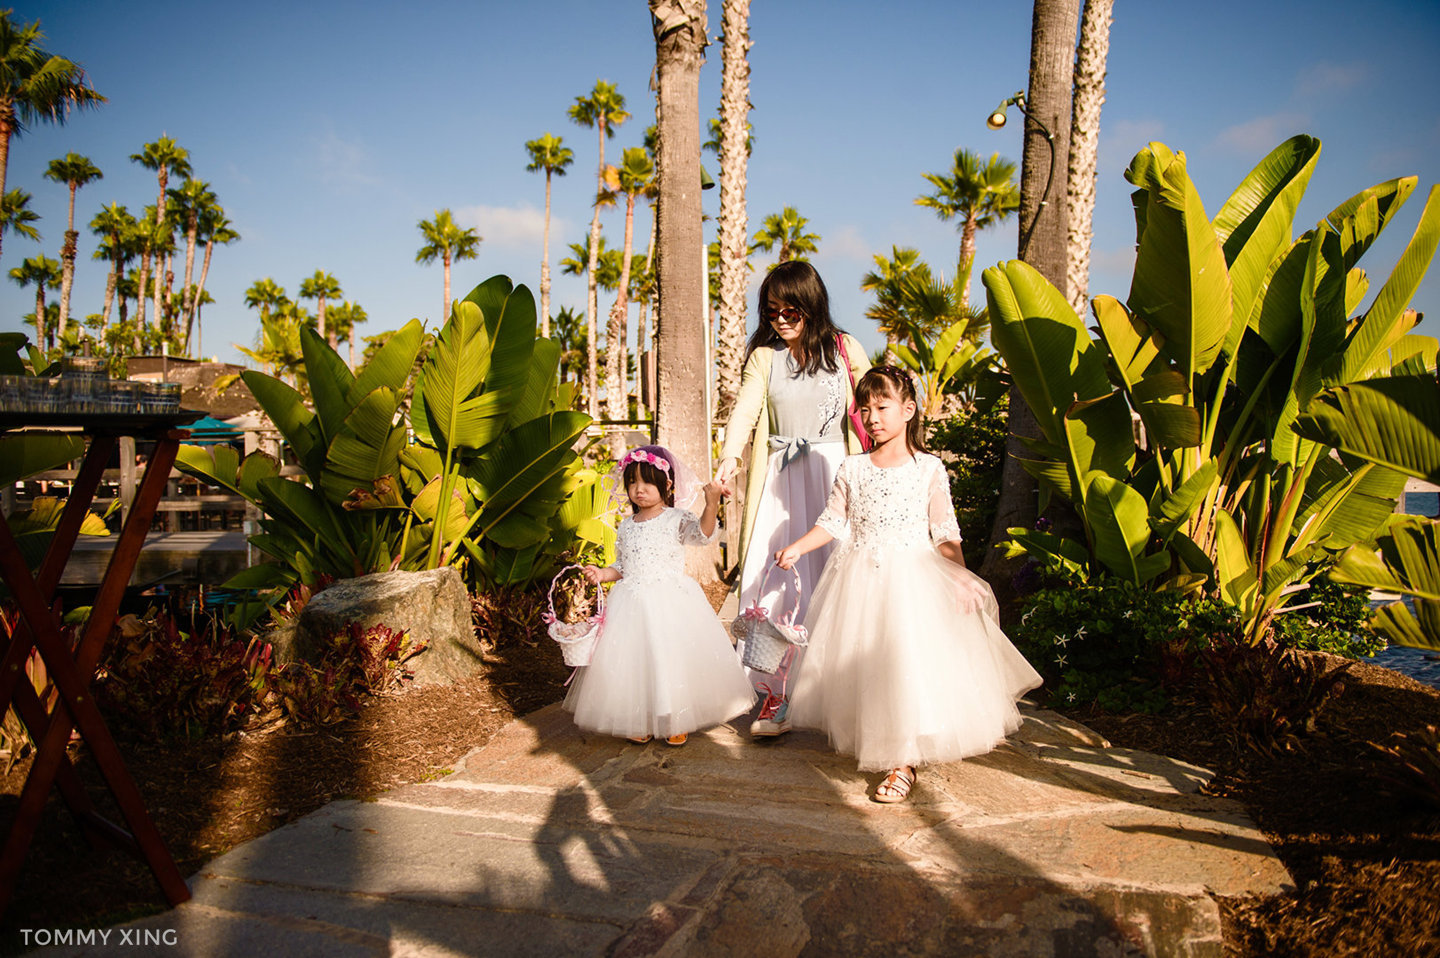 Paradise Point Resort Wedding Xiaolu & Bin San Diego 圣地亚哥婚礼摄影跟拍 Tommy Xing Photography 洛杉矶婚礼婚纱照摄影师 100.jpg